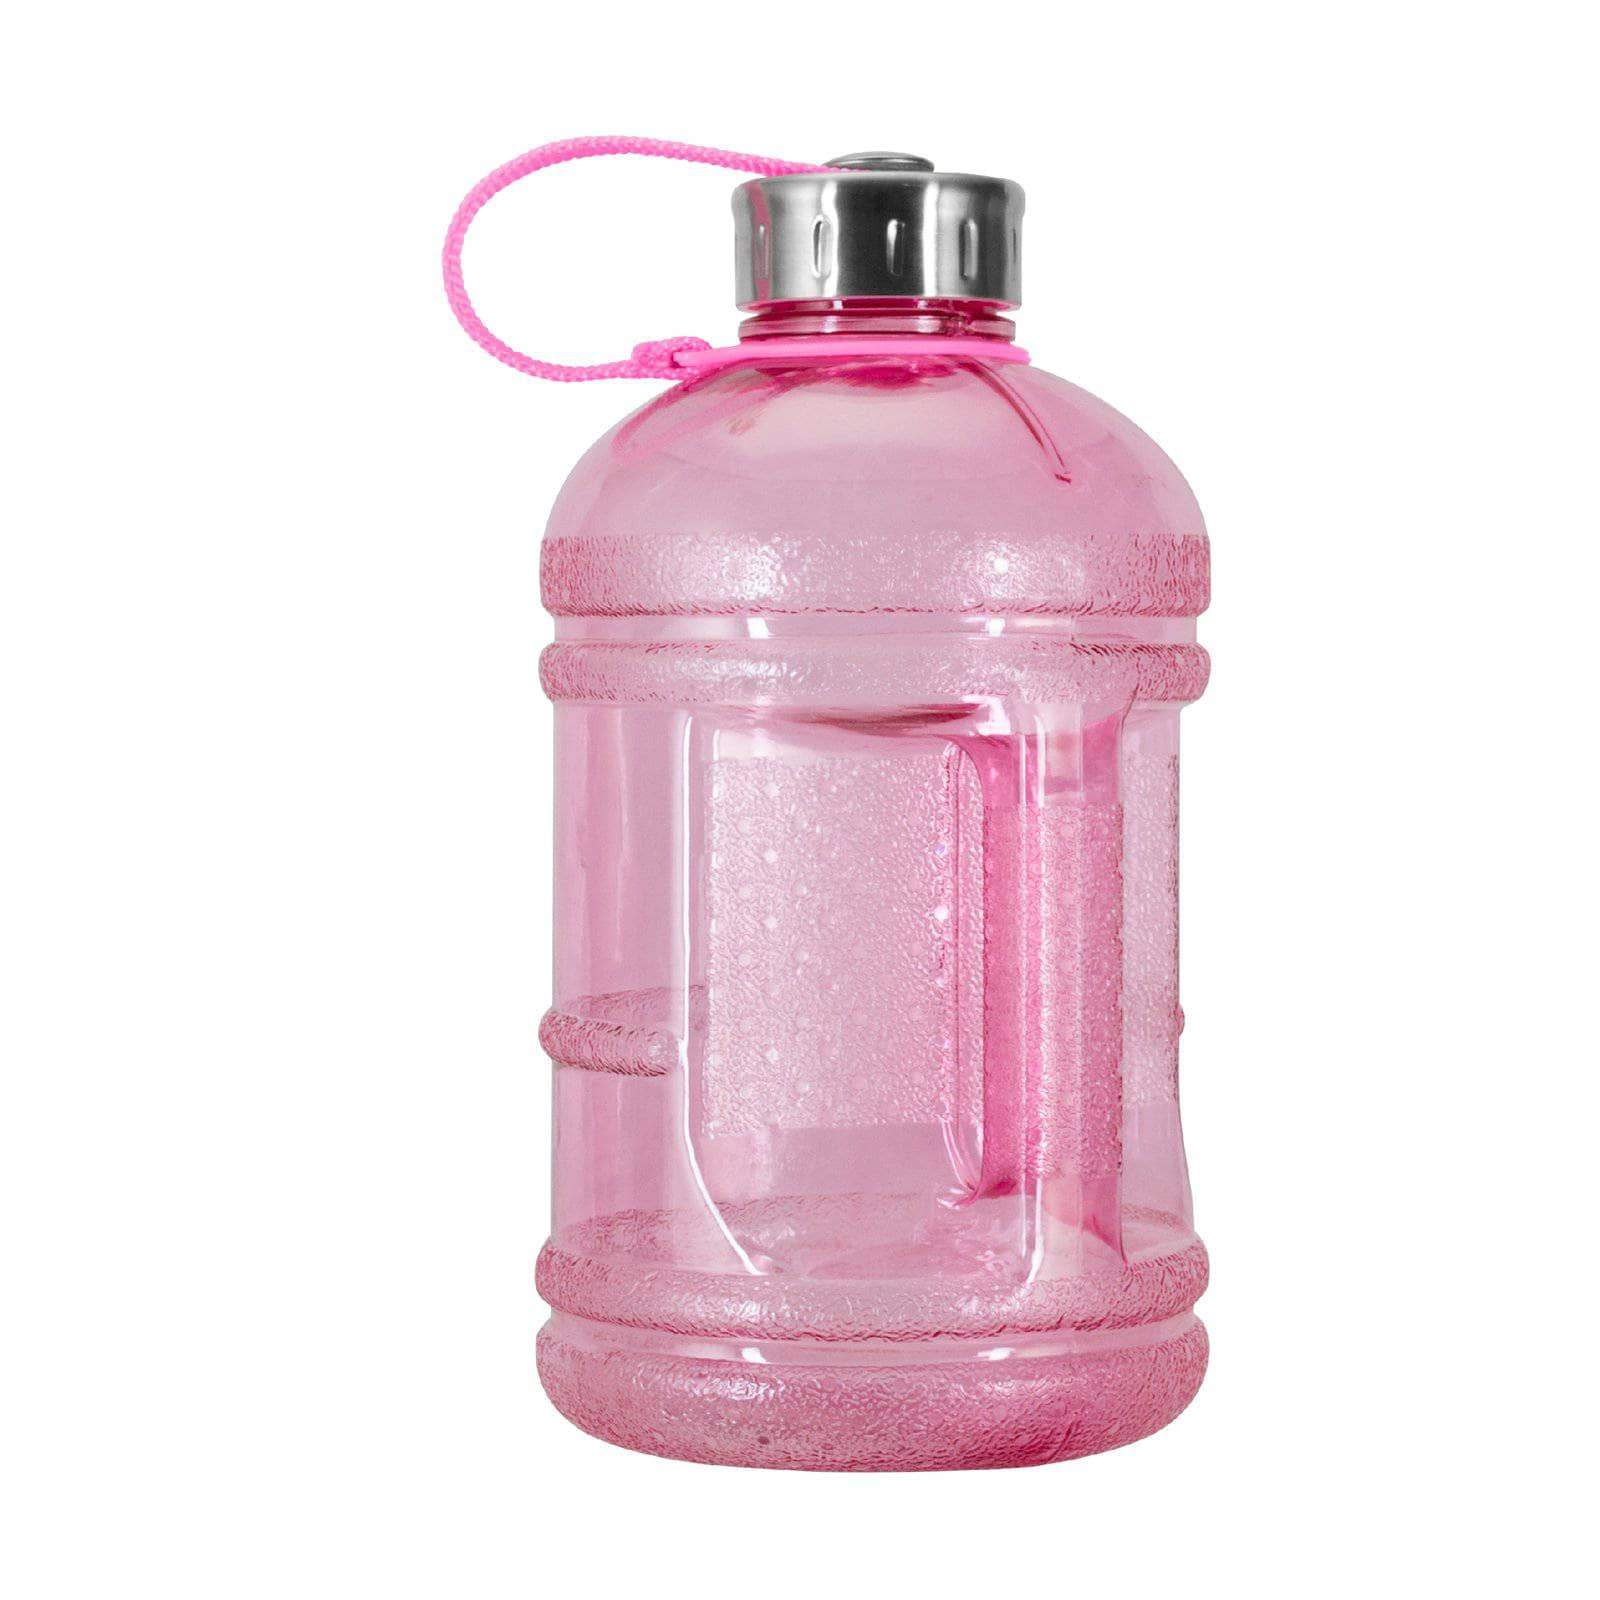 Geo Bottles Bottles Pink 1/2 Gallon BPA FREE Plastic Water Bottle w/ 48mm Steel Cap